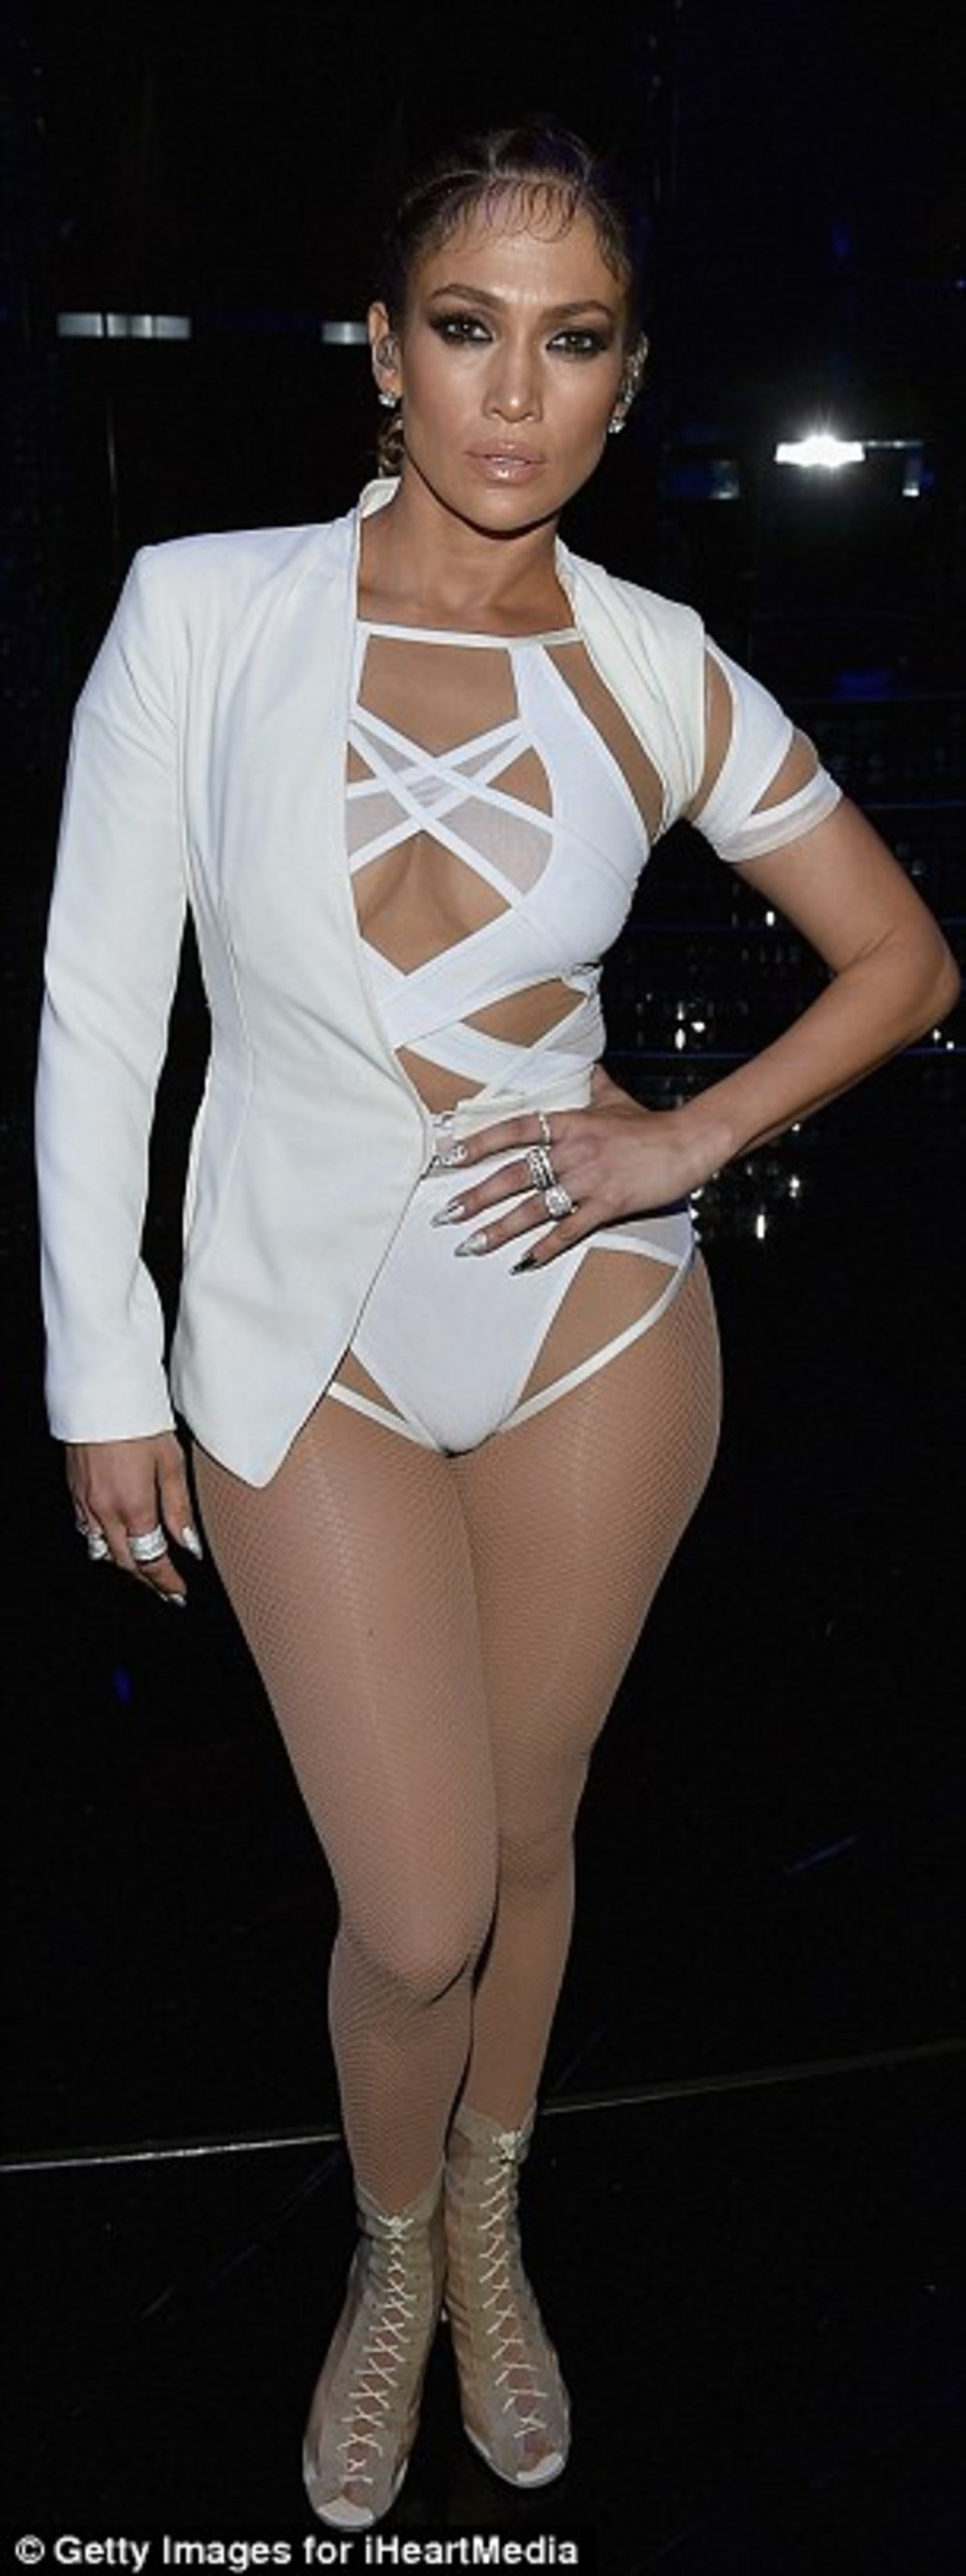 2C88B29500000578-3241785-Putting_on_a_show_Jennifer_Lopez_flashed_the_flesh_at_the_iHeart-a-23_1442746465527